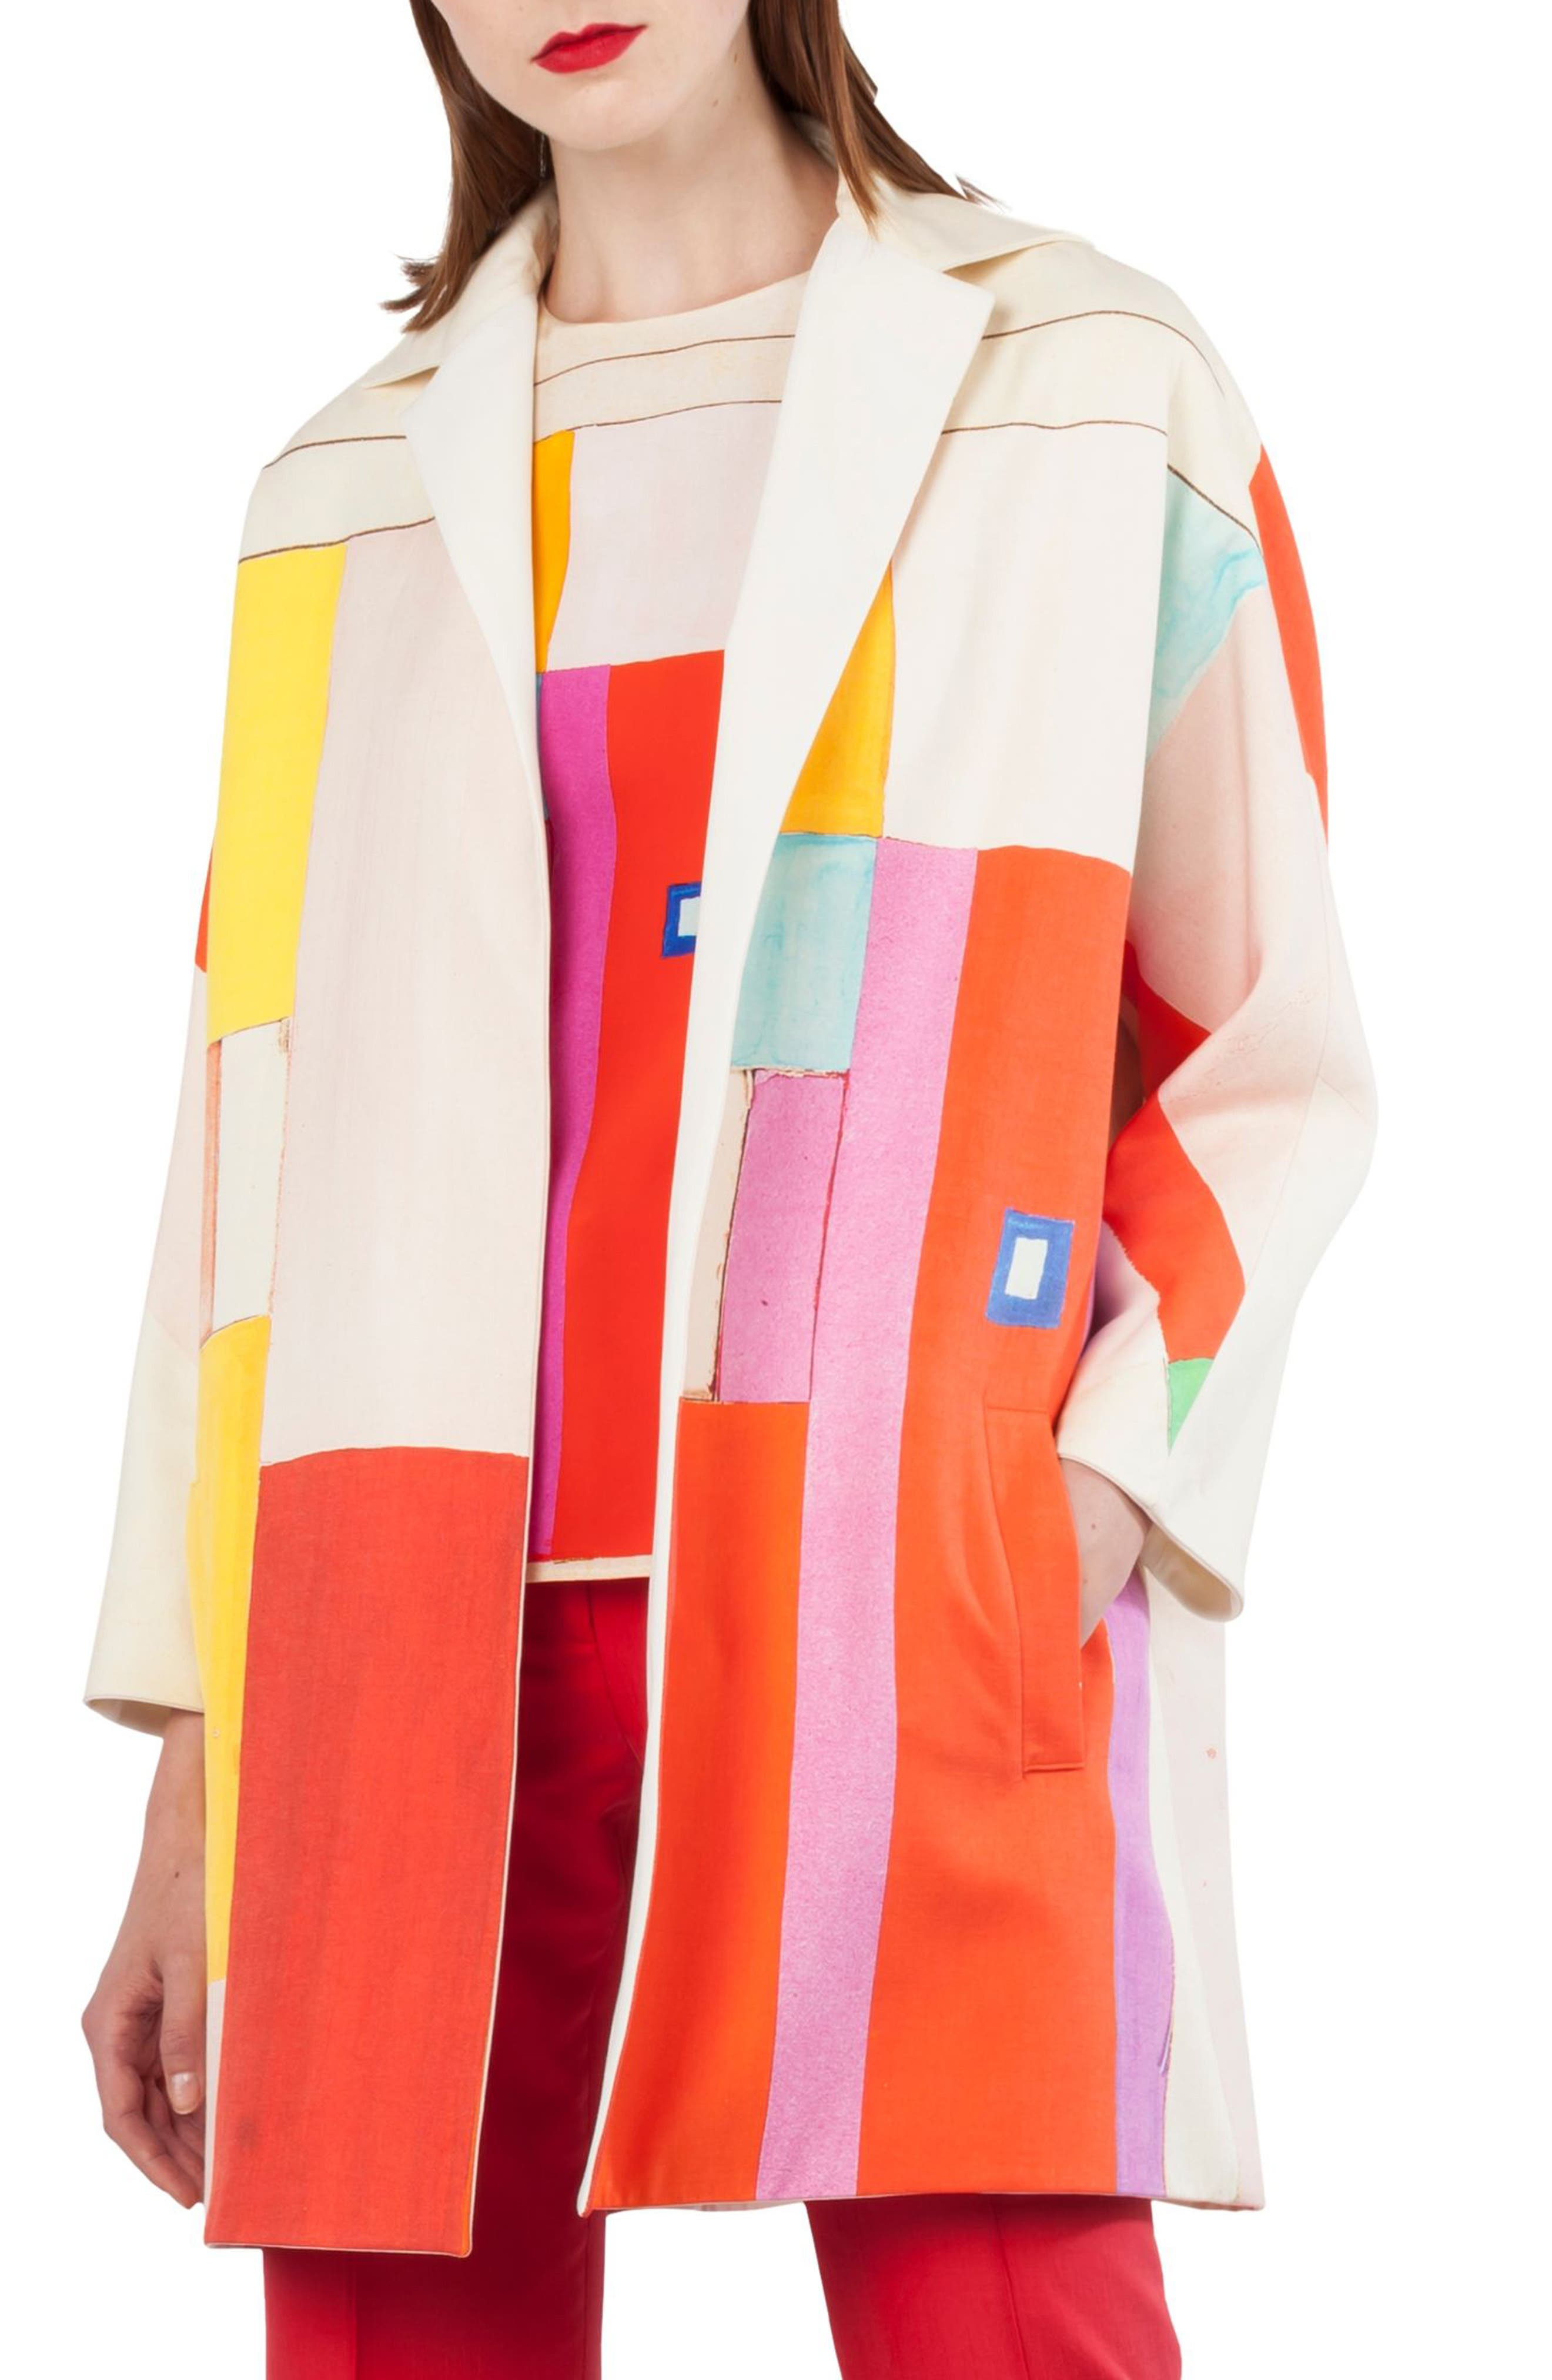 Mural Print Cotton & Silk Reversible Coat,                         Main,                         color, Multicolor